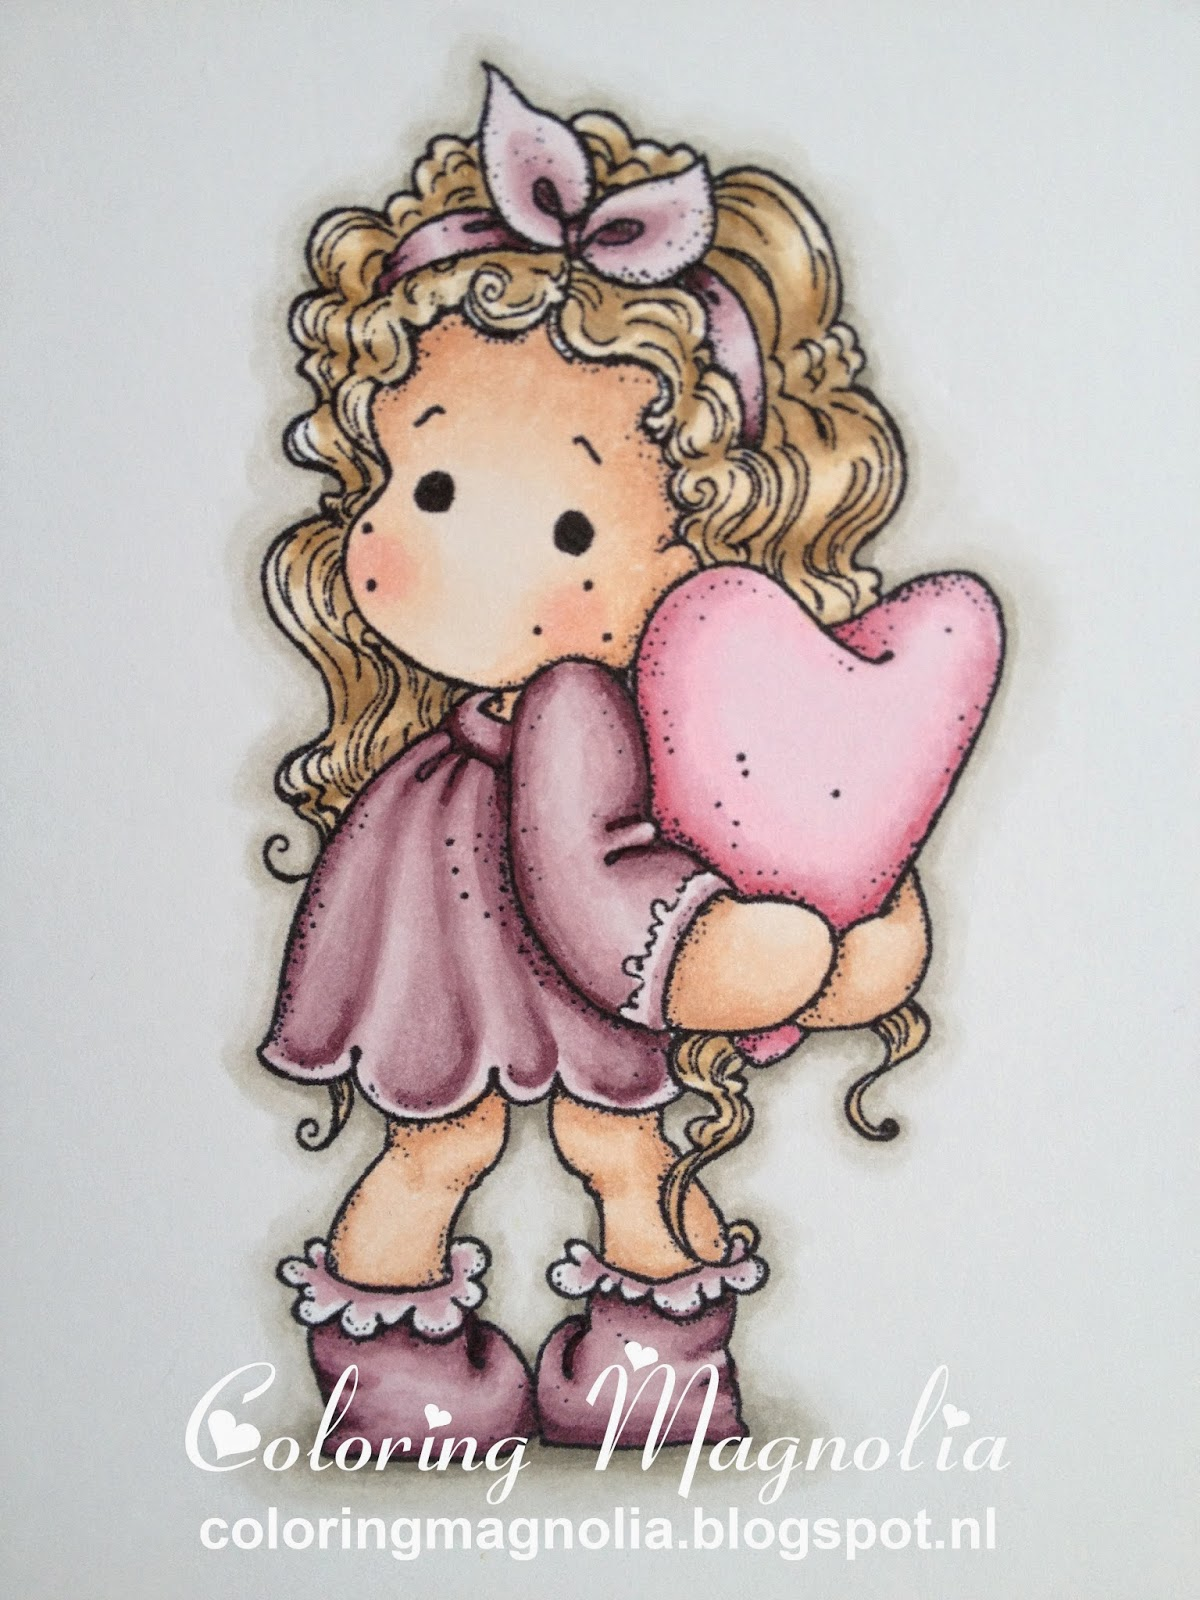 Coloring Magnolia Stamp 2013 With Love Collection - Tilda Hiding Heart